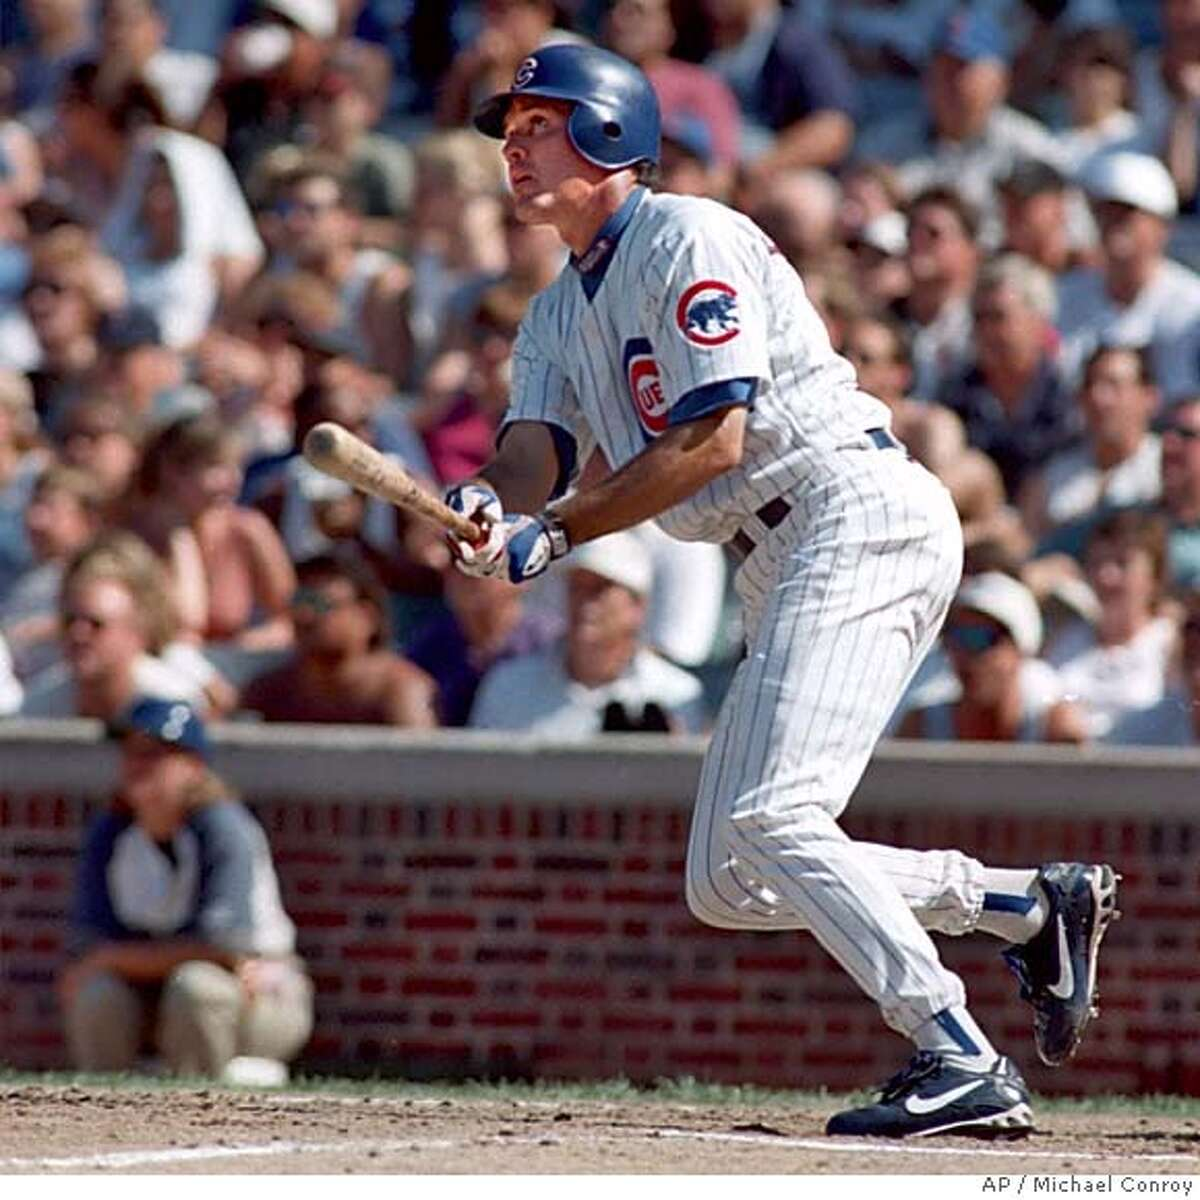 ** FILE ** Chicago Cubs Ryne Sandberg watches his home run ball against the Los Angeles Dodgers in the second inning in Chicago, in this Aug. 2, 1997 photo. Sandberg and Wade Boggs were elected to the Baseball Hall of Fame on Tuesday Jan. 4, 2005. (AP Photo/Michael Conroy)